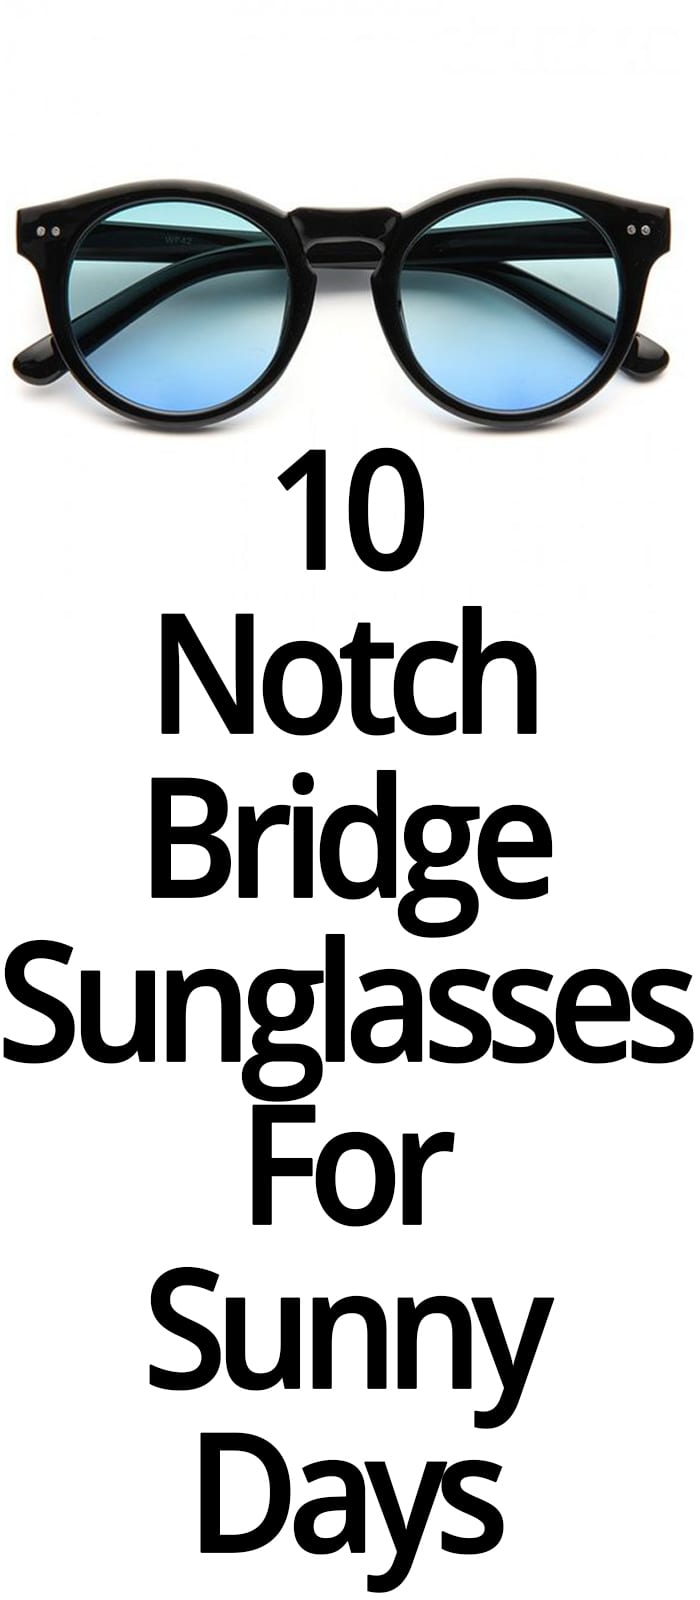 10 NOTCH BRIDGE SUNGLASSES